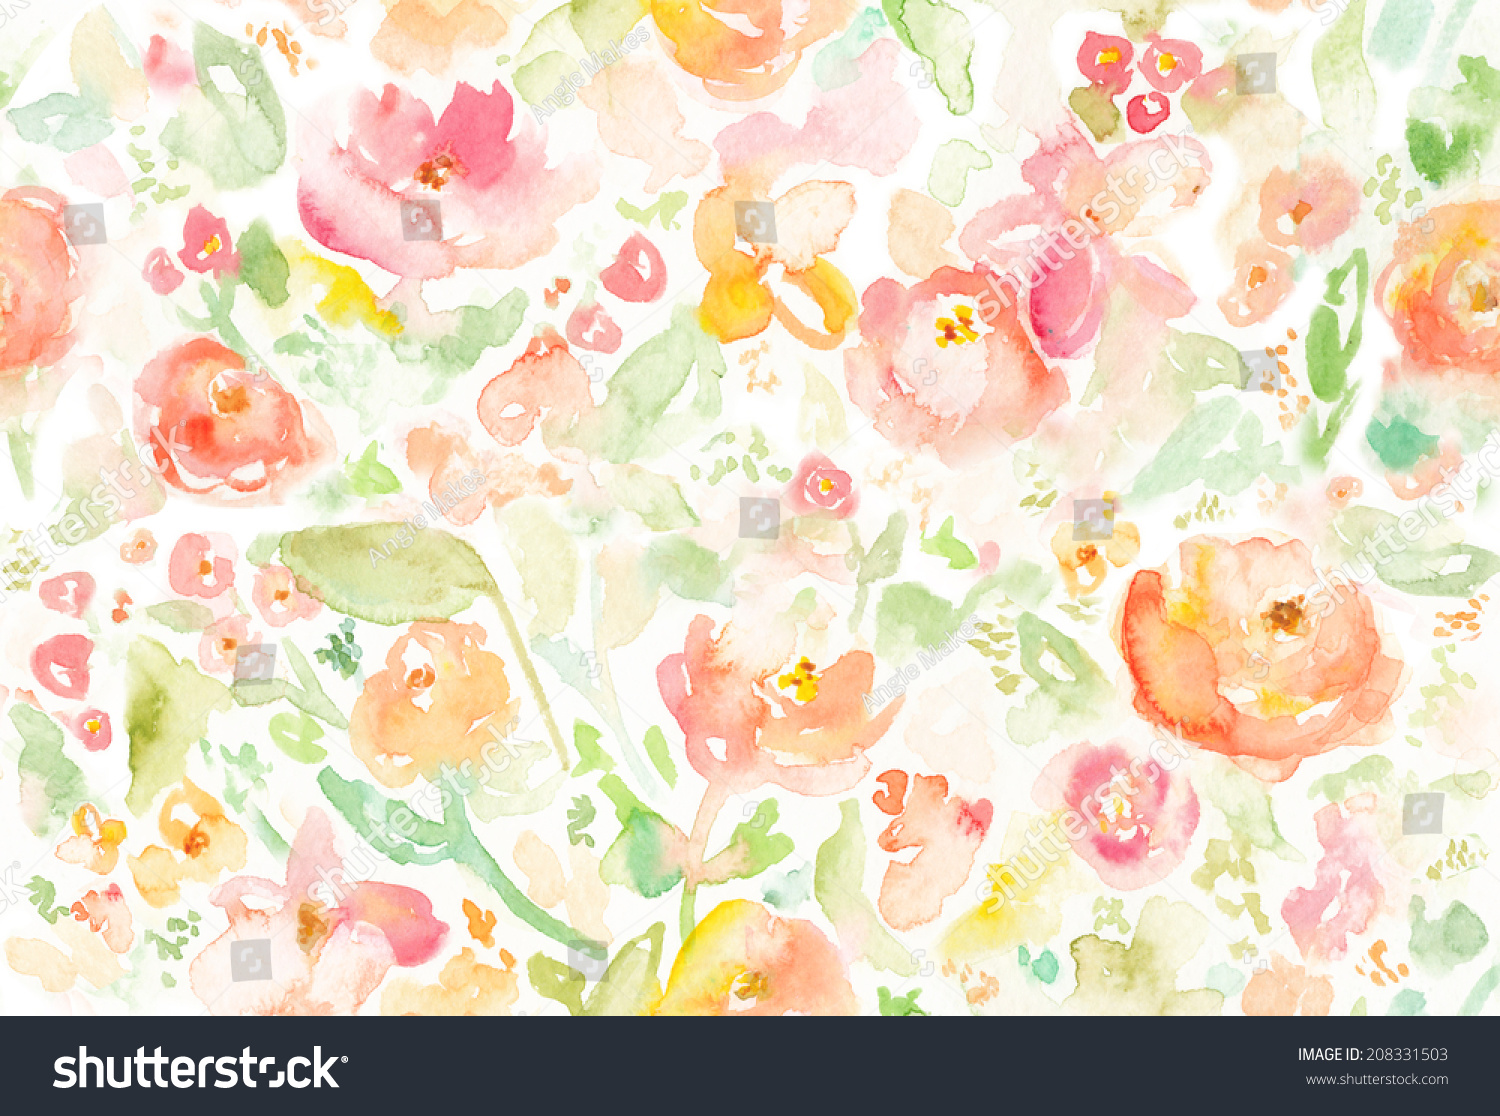 seamless colorful abstract watercolor floral background - Floral Backgrounds